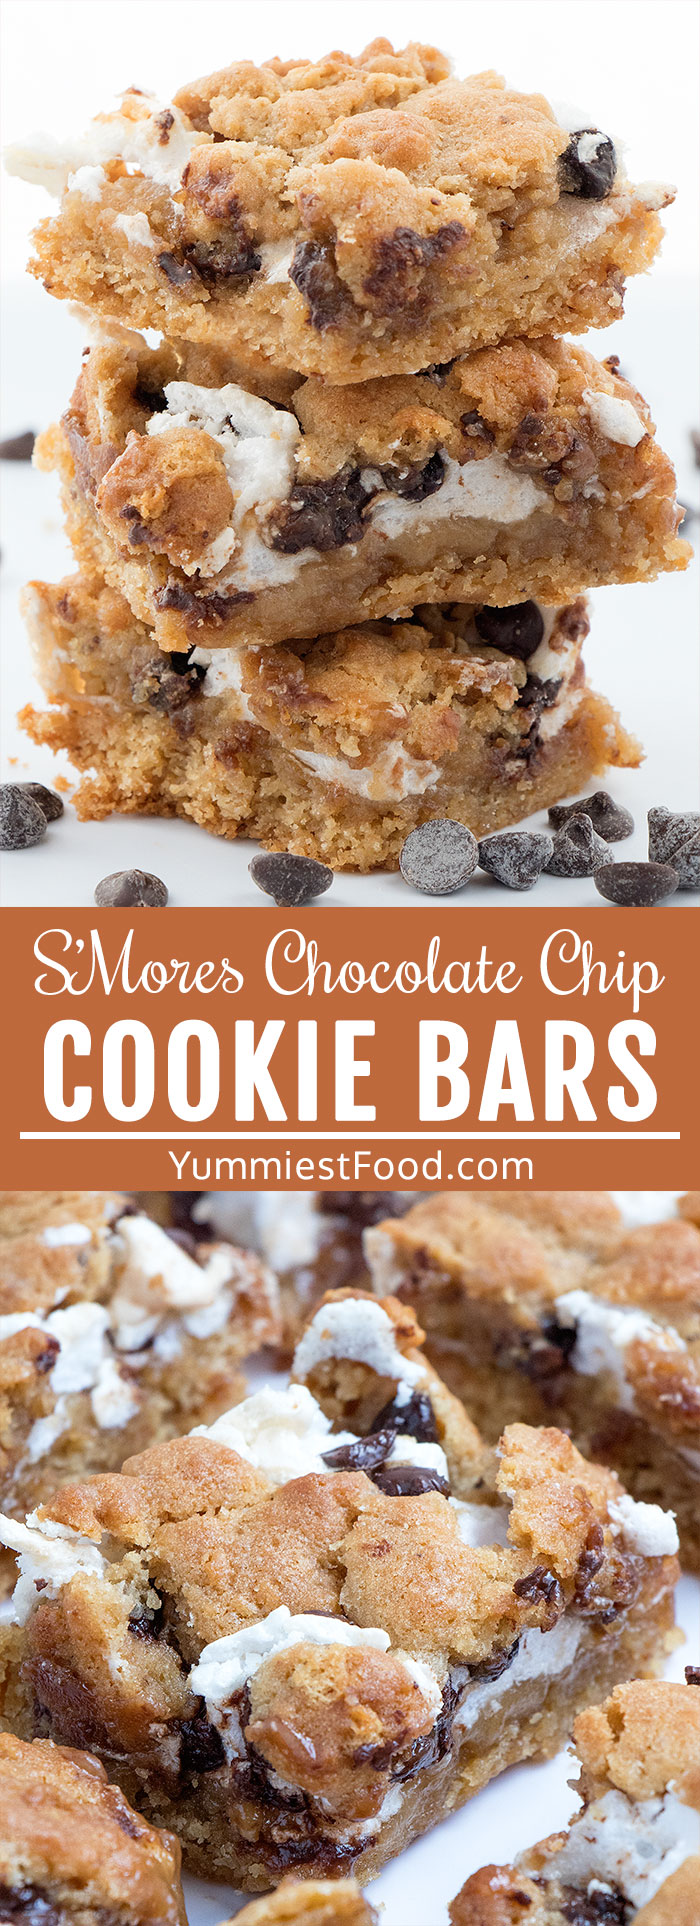 S'Mores Chocolate Chip Cookie Bars are one of the sweet treats perfect for a crowd or parties! Easy delicious dessert with graham crackers, chocolate chips and homemade marshmallow cream. #desserts #dessert #dessertrecipes #dessertfoodrecipes #easyrecipes #potluck #chocolate #chocolatechip #bars #barsrecipes #cookiebars